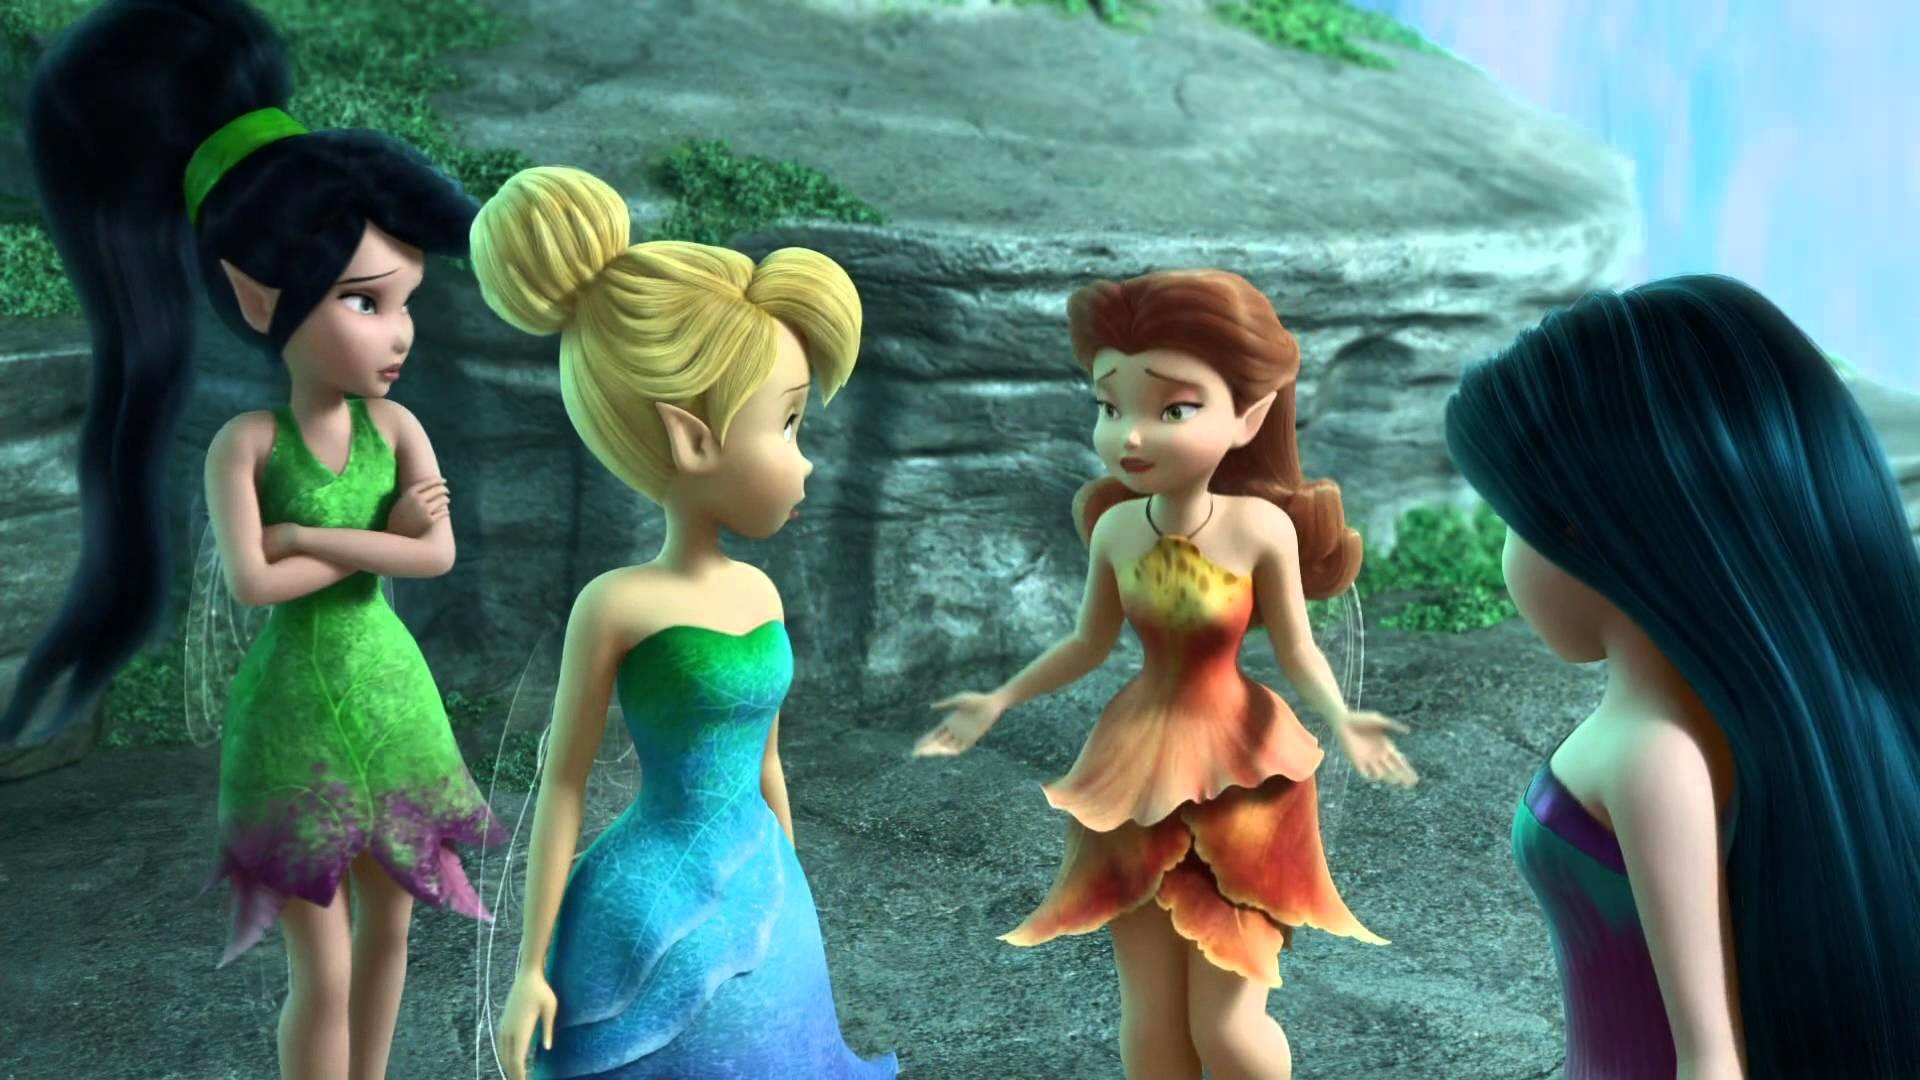 Res: 1920x1080, Tinker Bell - Tinker Bell and the Pirate Fairy Sneak Peek 1080p